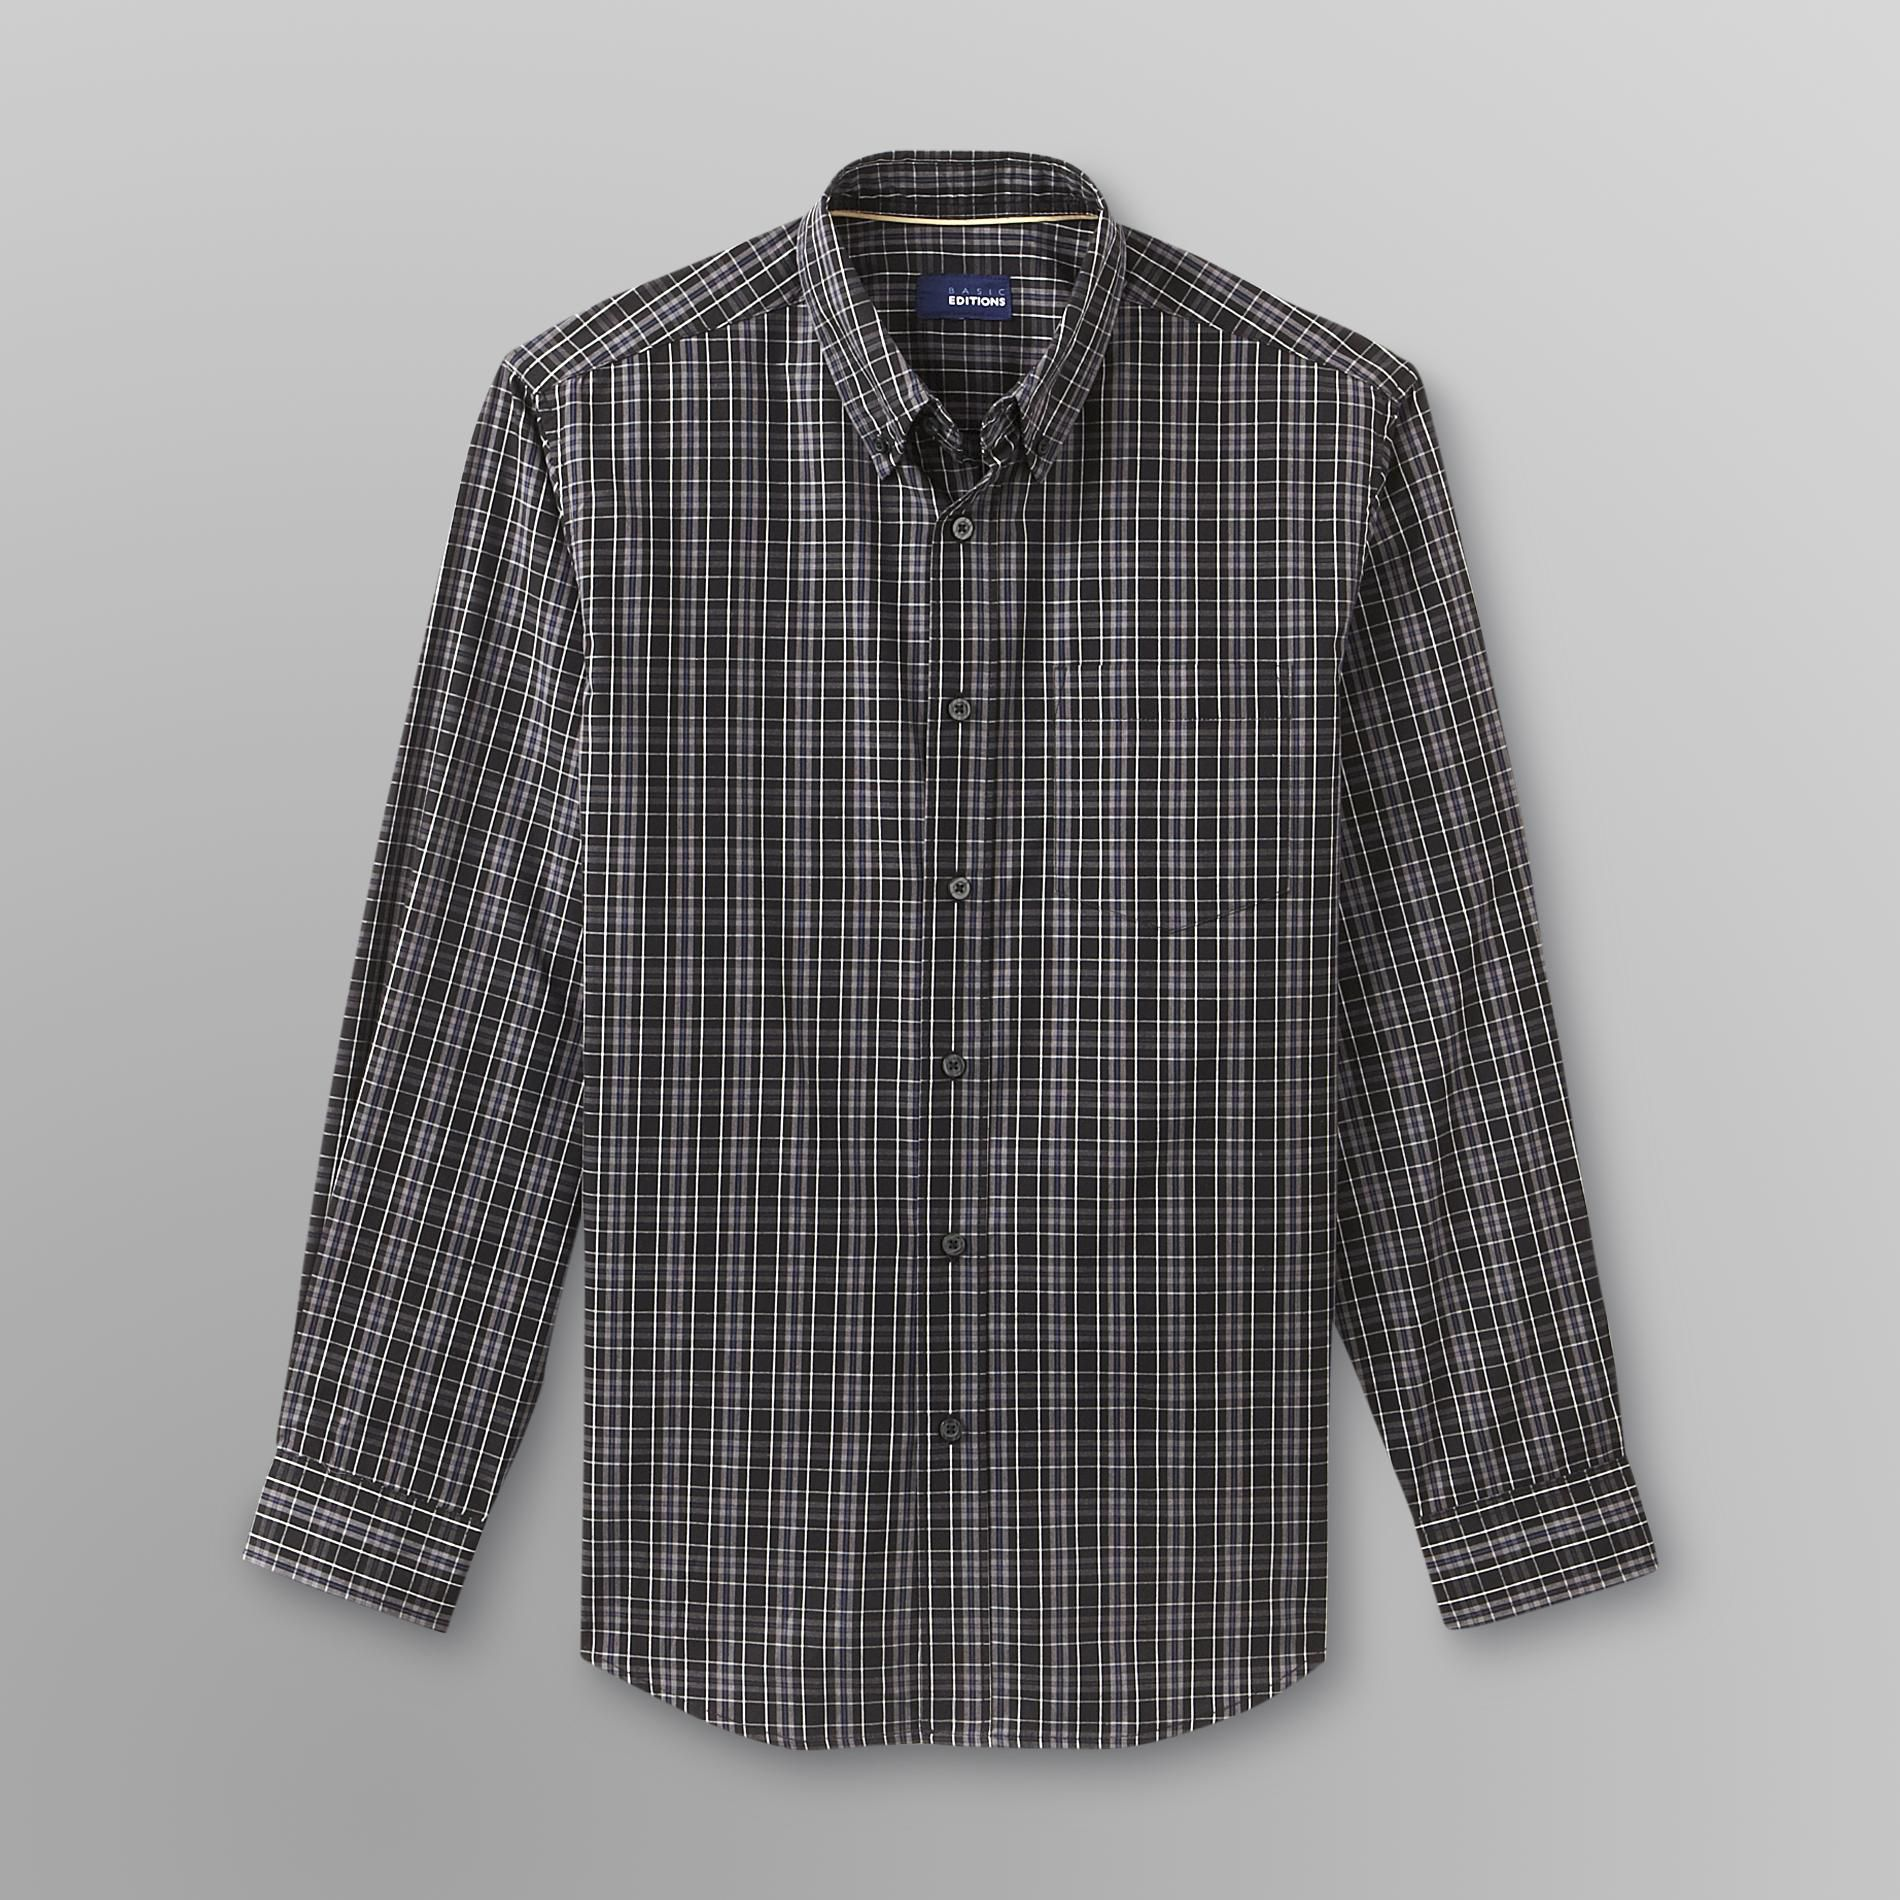 Basic Editions Men's Easy Care Long Sleeve Shirt - Plaid